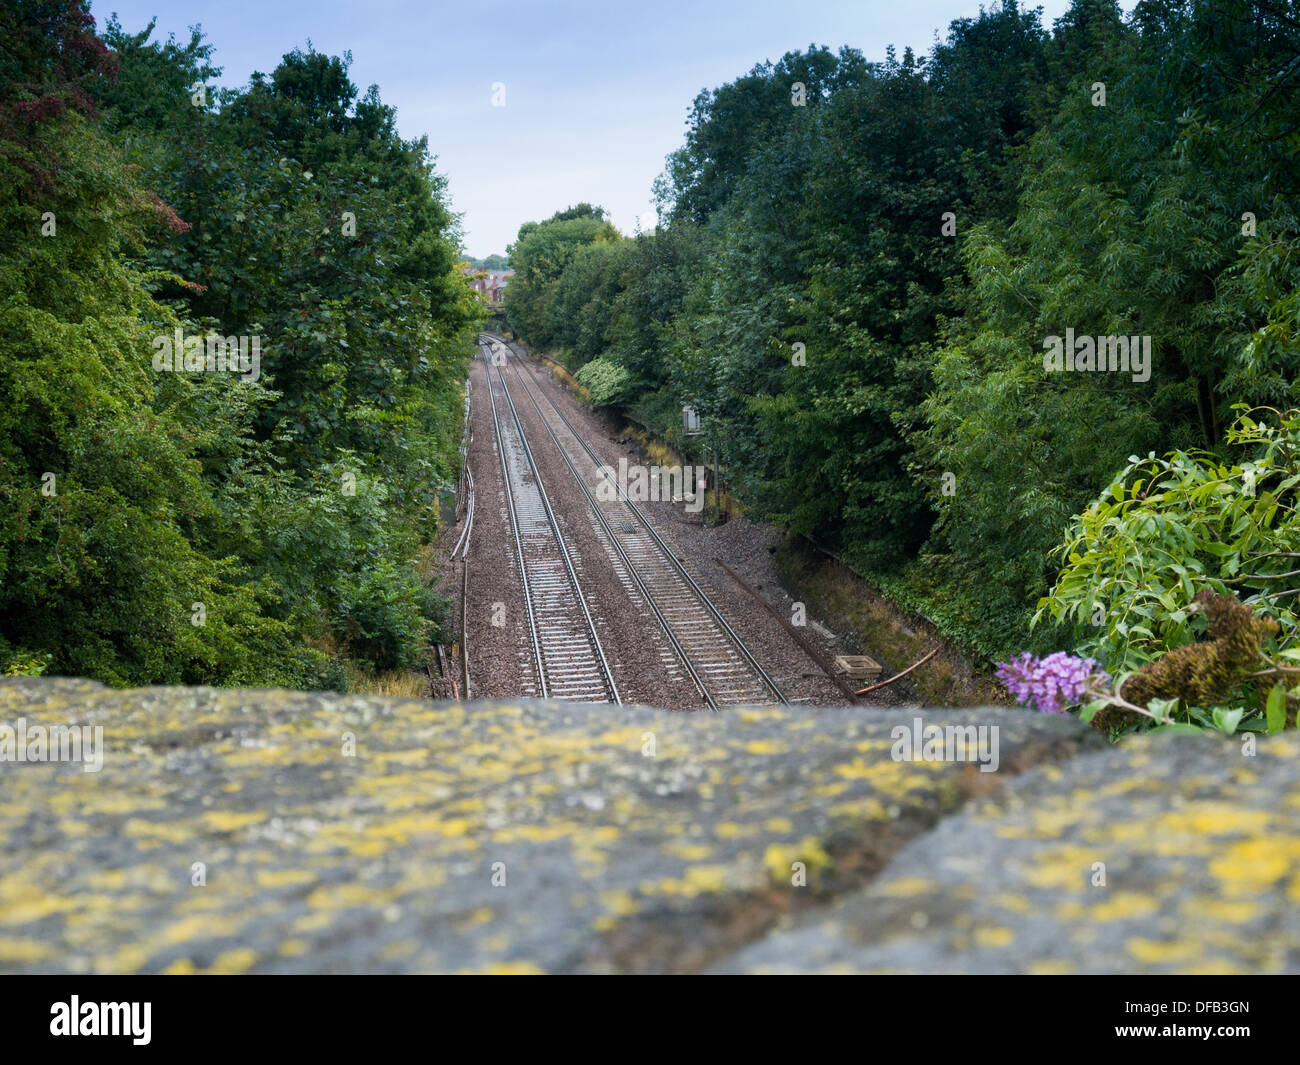 Overlooking a train line from a bridge. This was taken in Belper, Derbyshire, United Kingdom. - Stock Image